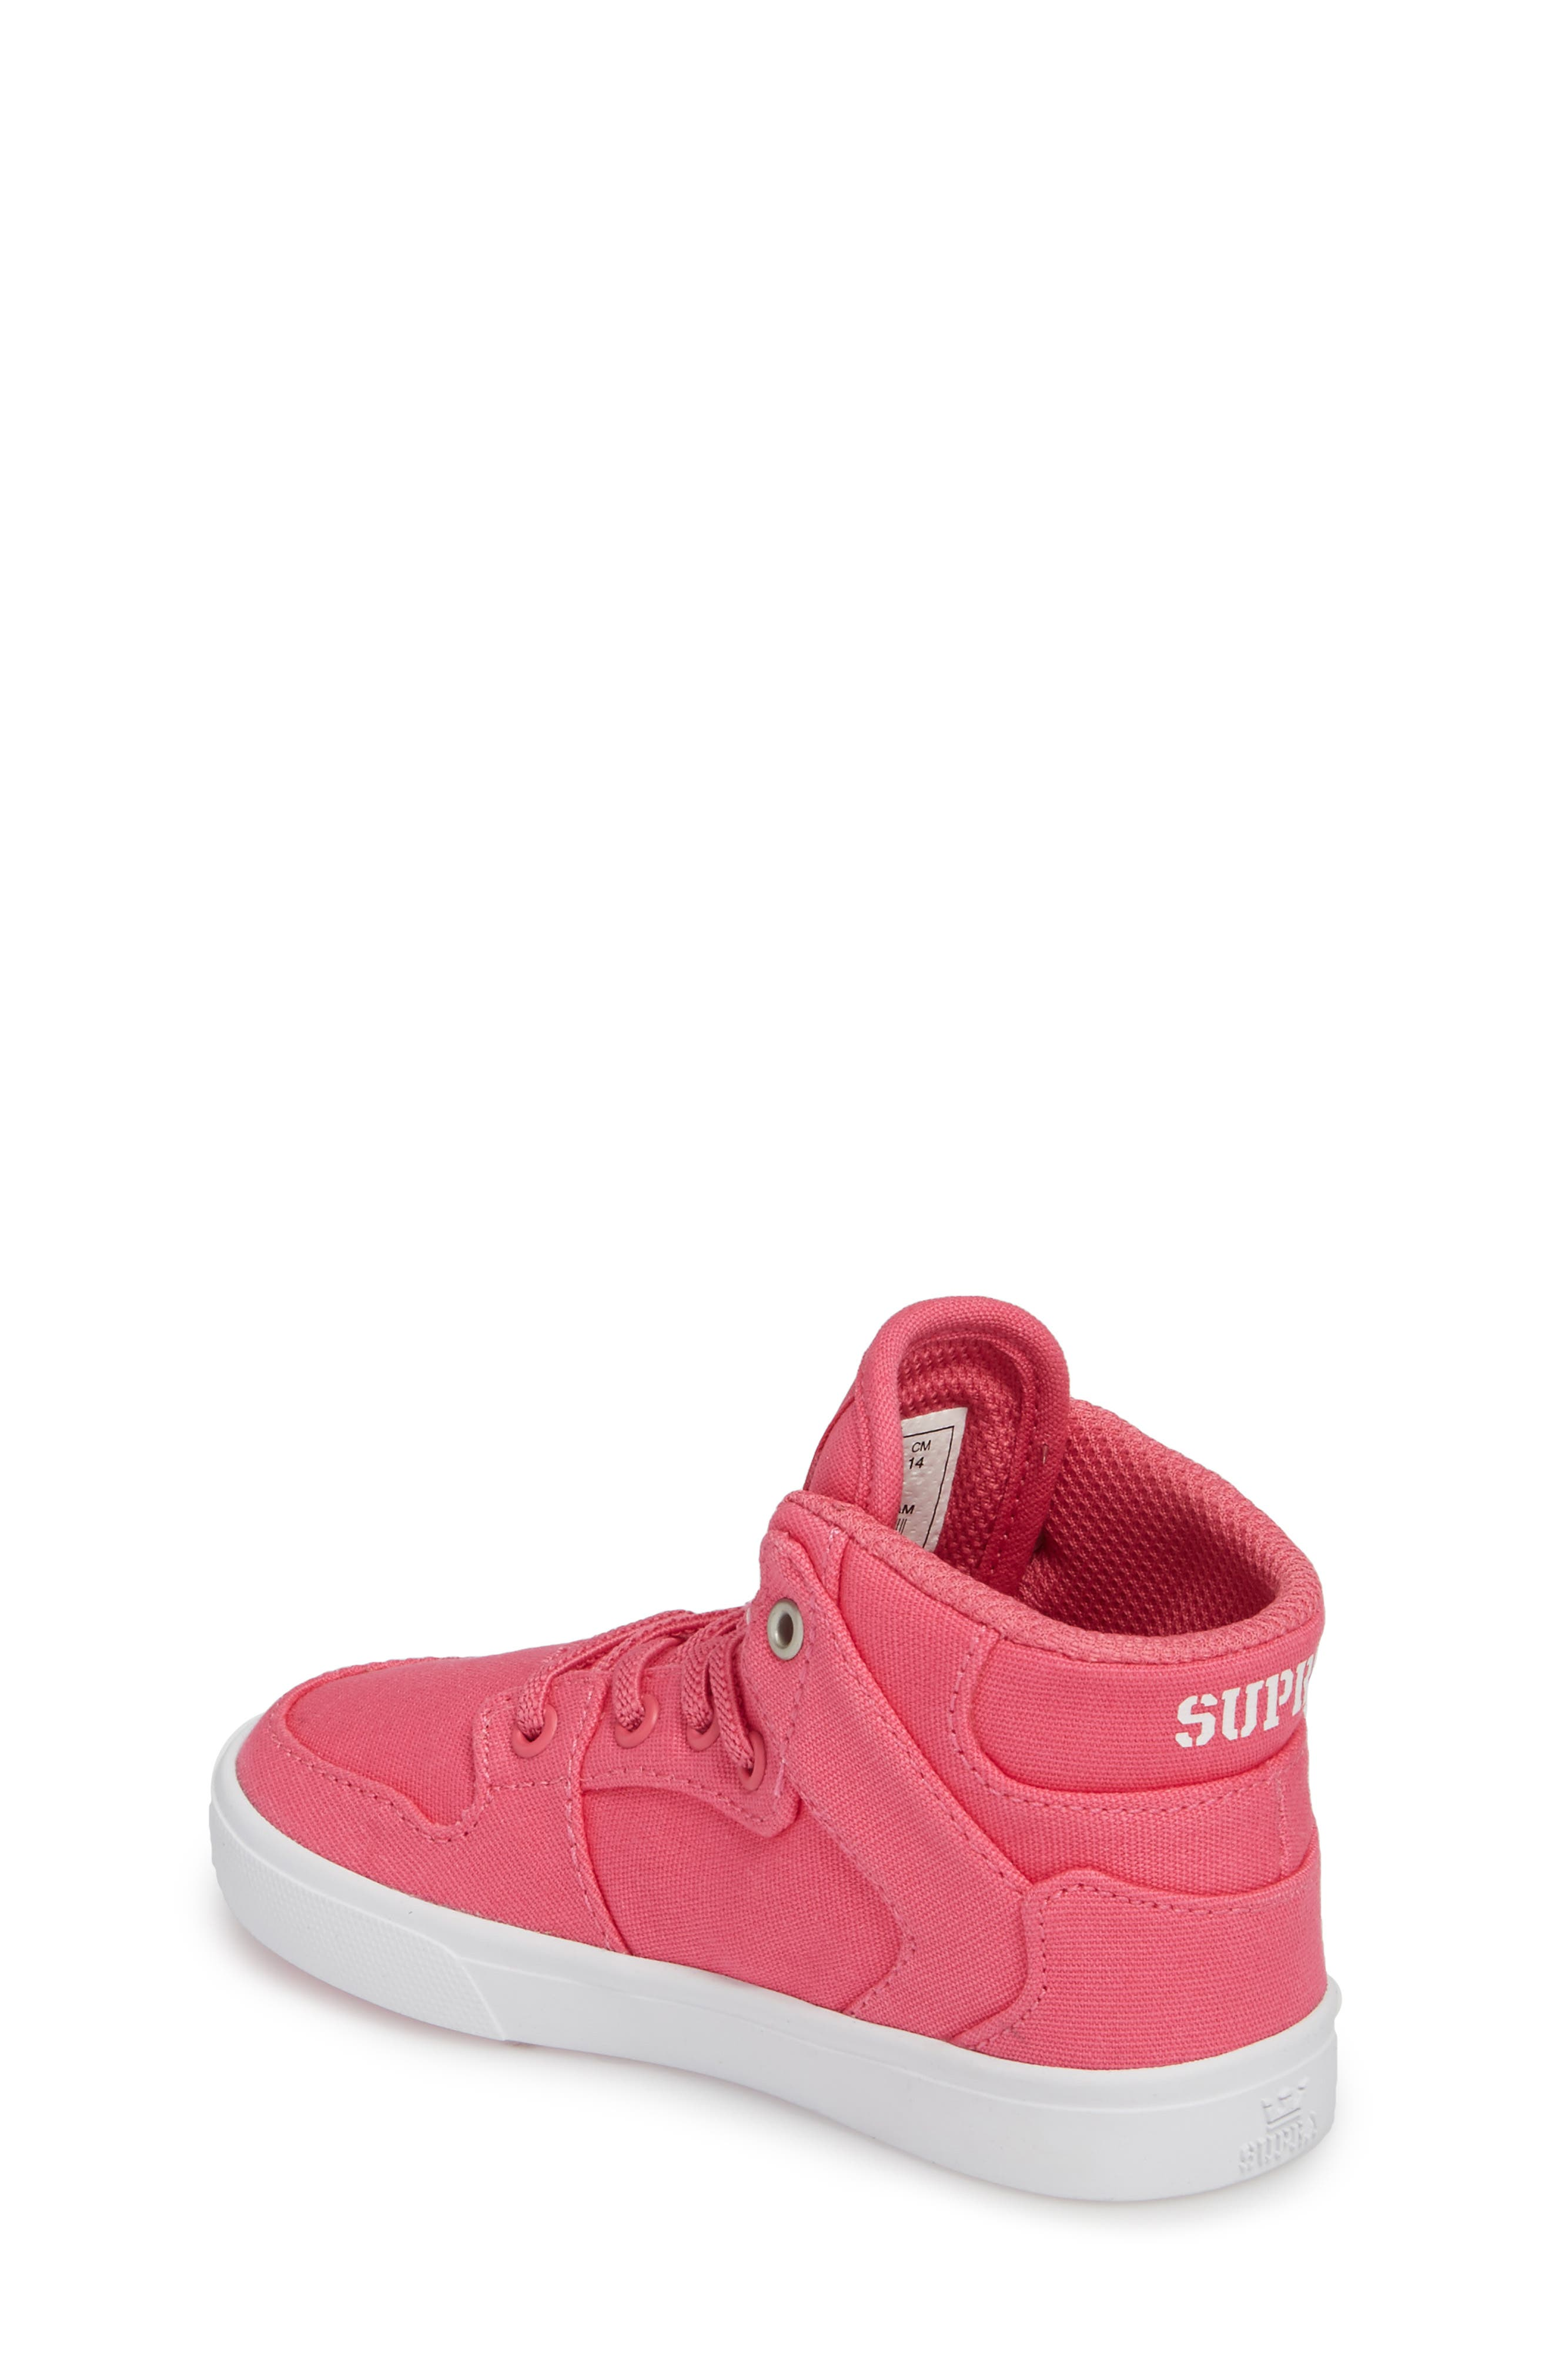 'Vaider' High Top Sneaker,                             Alternate thumbnail 2, color,                             Pink